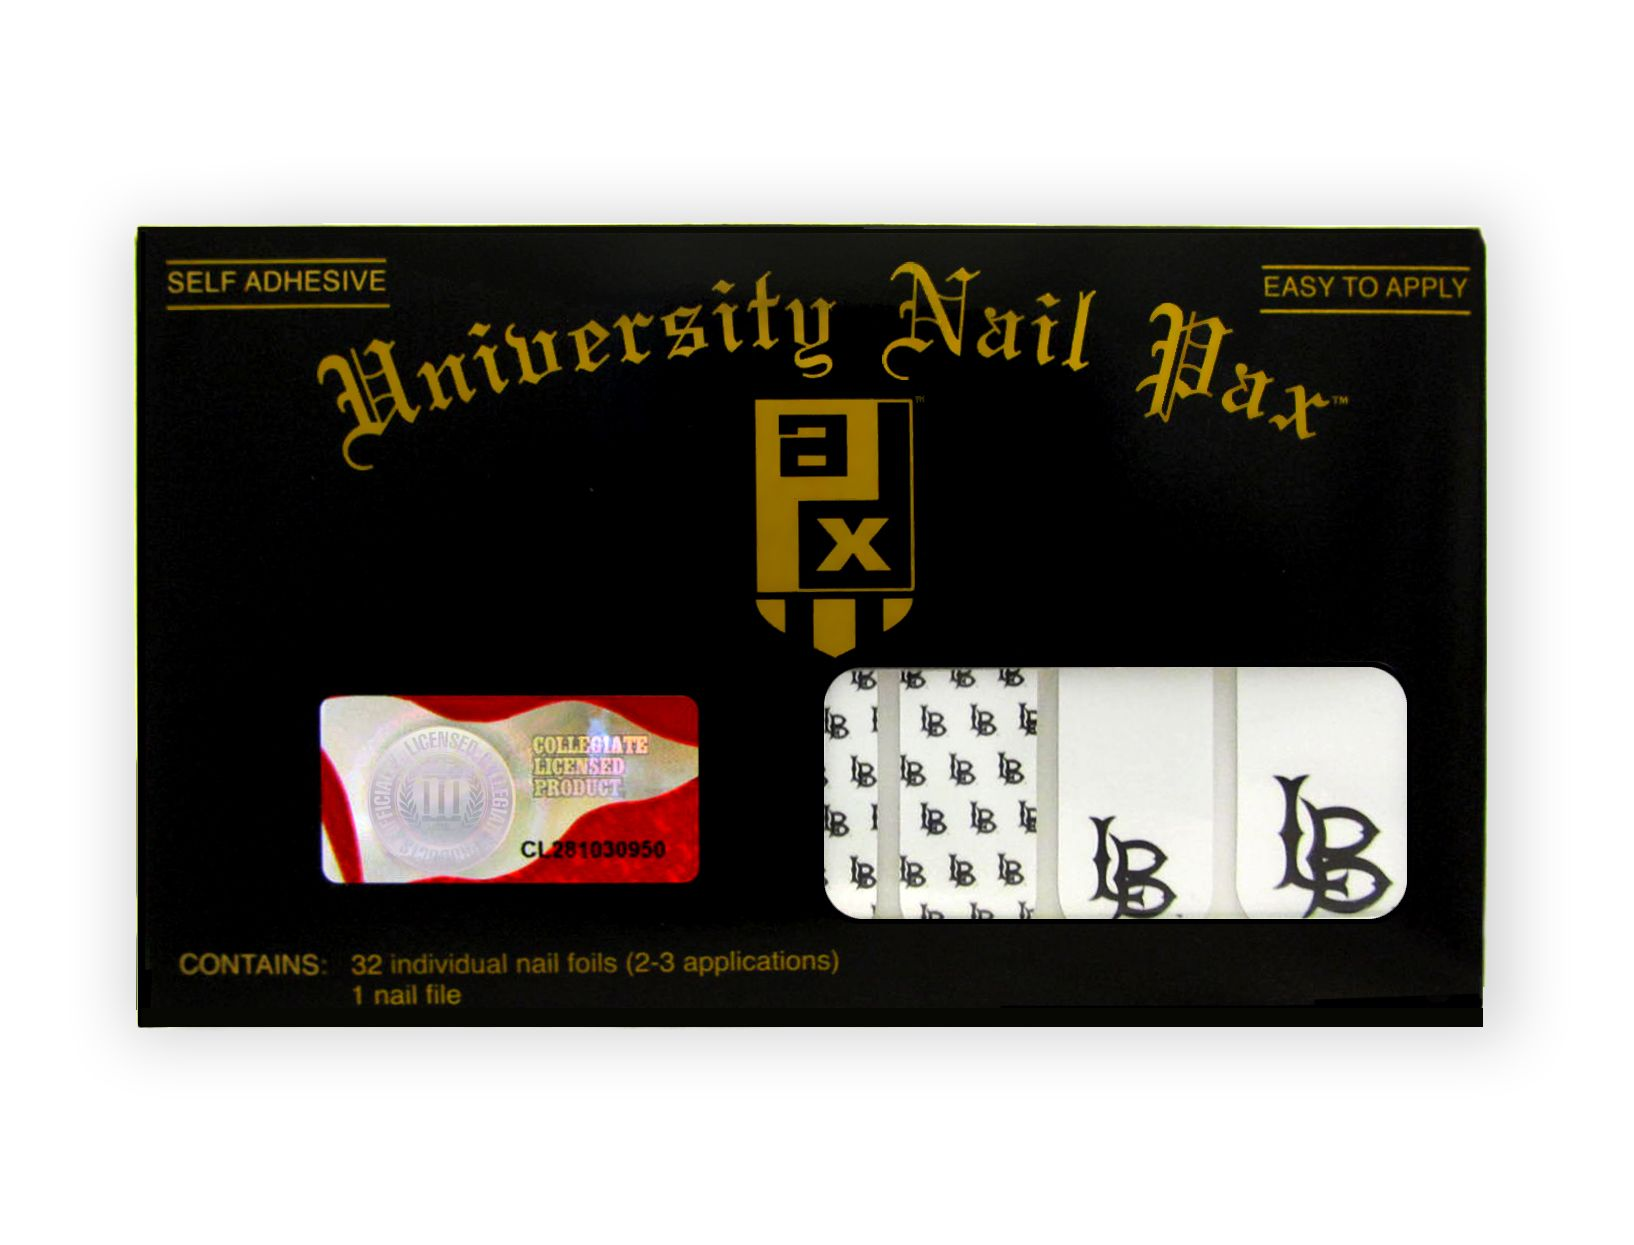 Long Beach State University - set includes 32 nail wraps and a nail file.  Buy them today at www.shopunp.com - $12.00.